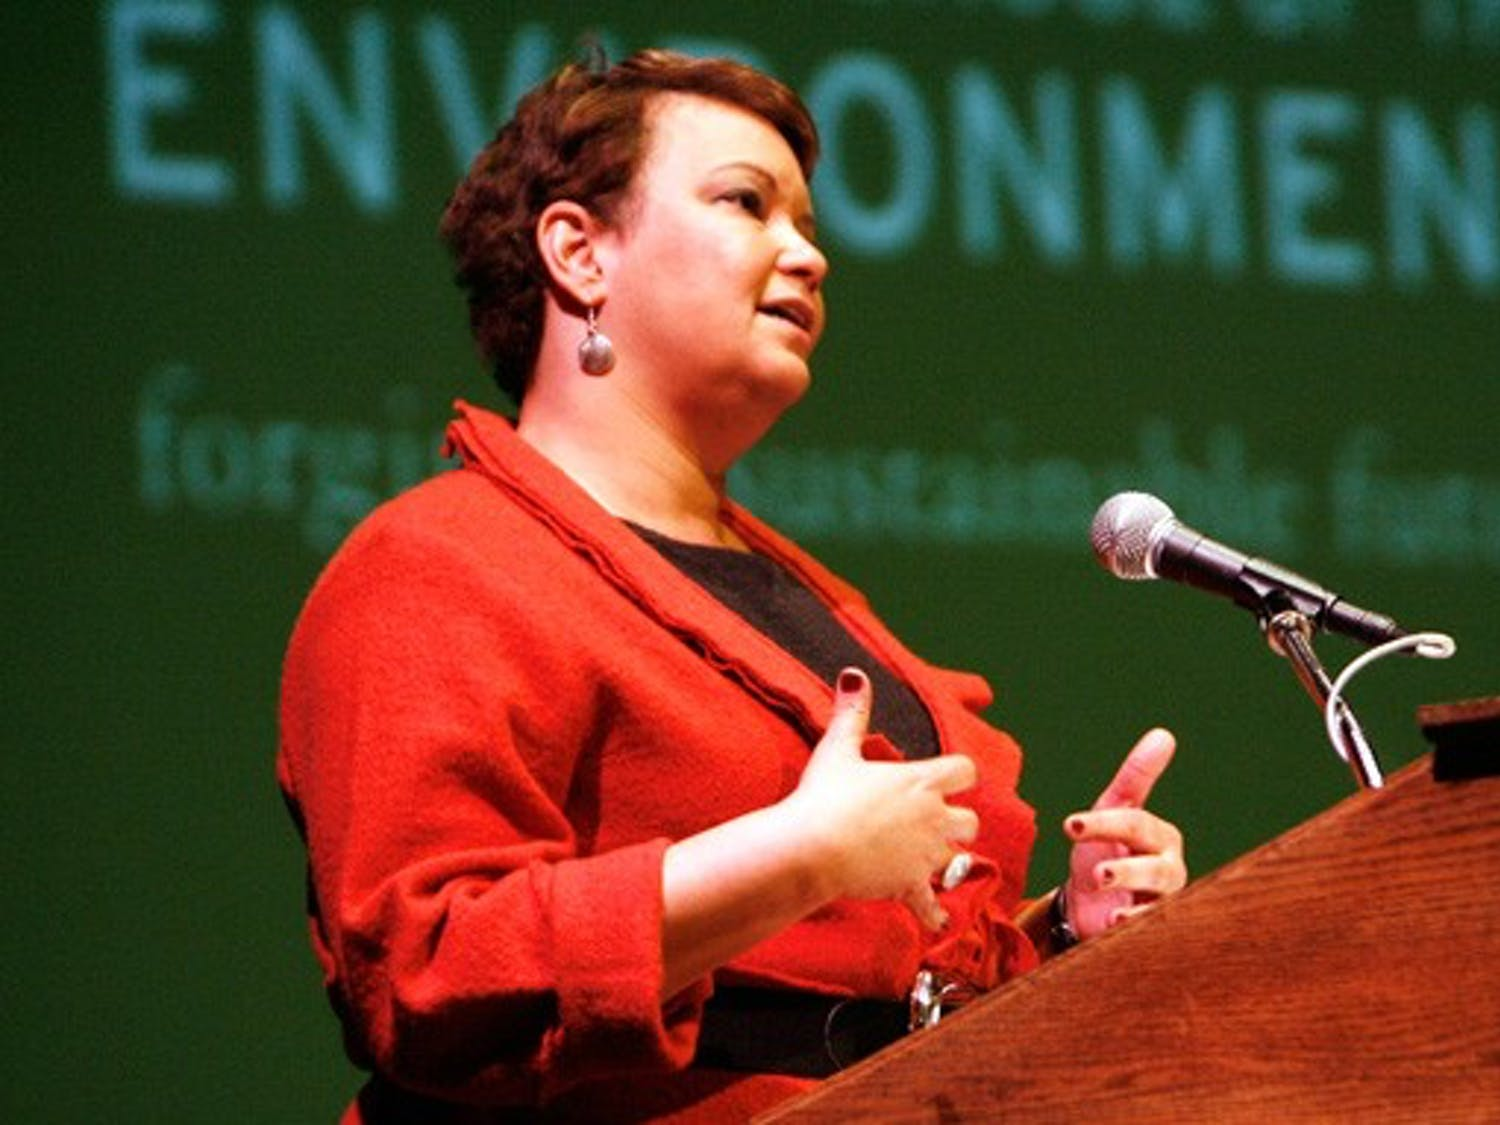 Environmental Protection Agency Administrator Lisa Jackson speaks at Reynolds Industries Theater to a crowd of more than 500 people Tuesday afternoon.